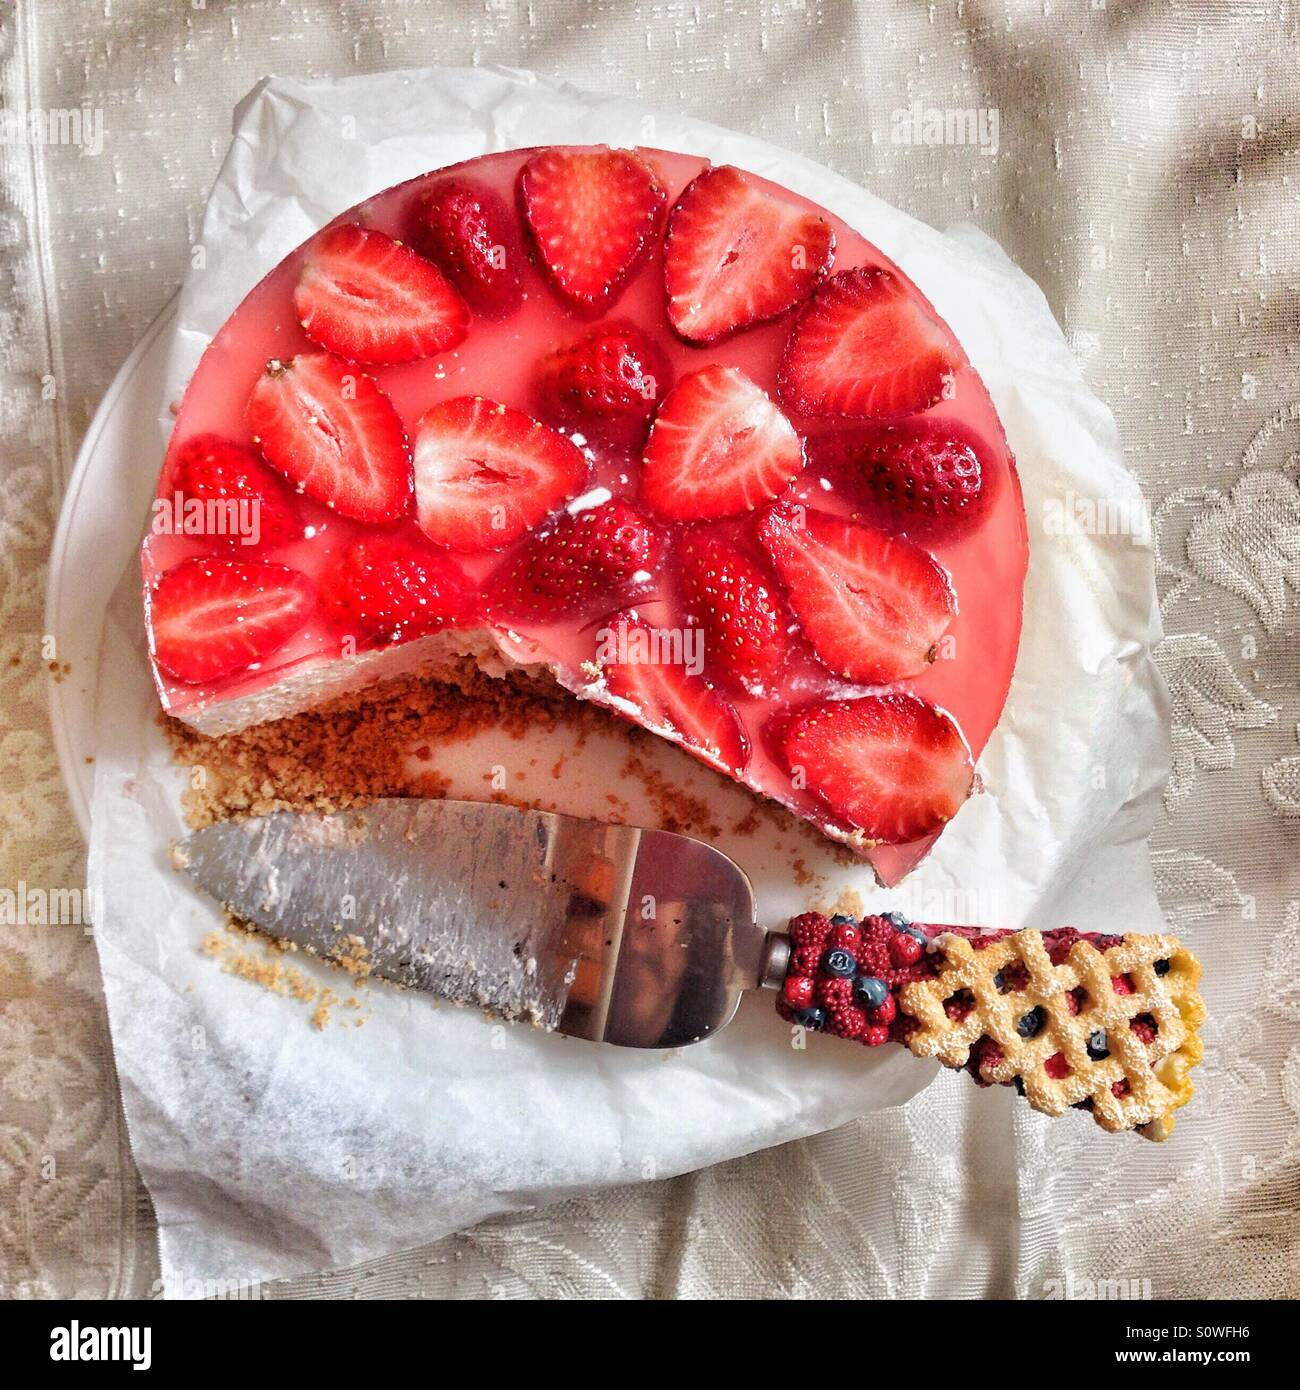 Strawberry cheesecake - Stock Image